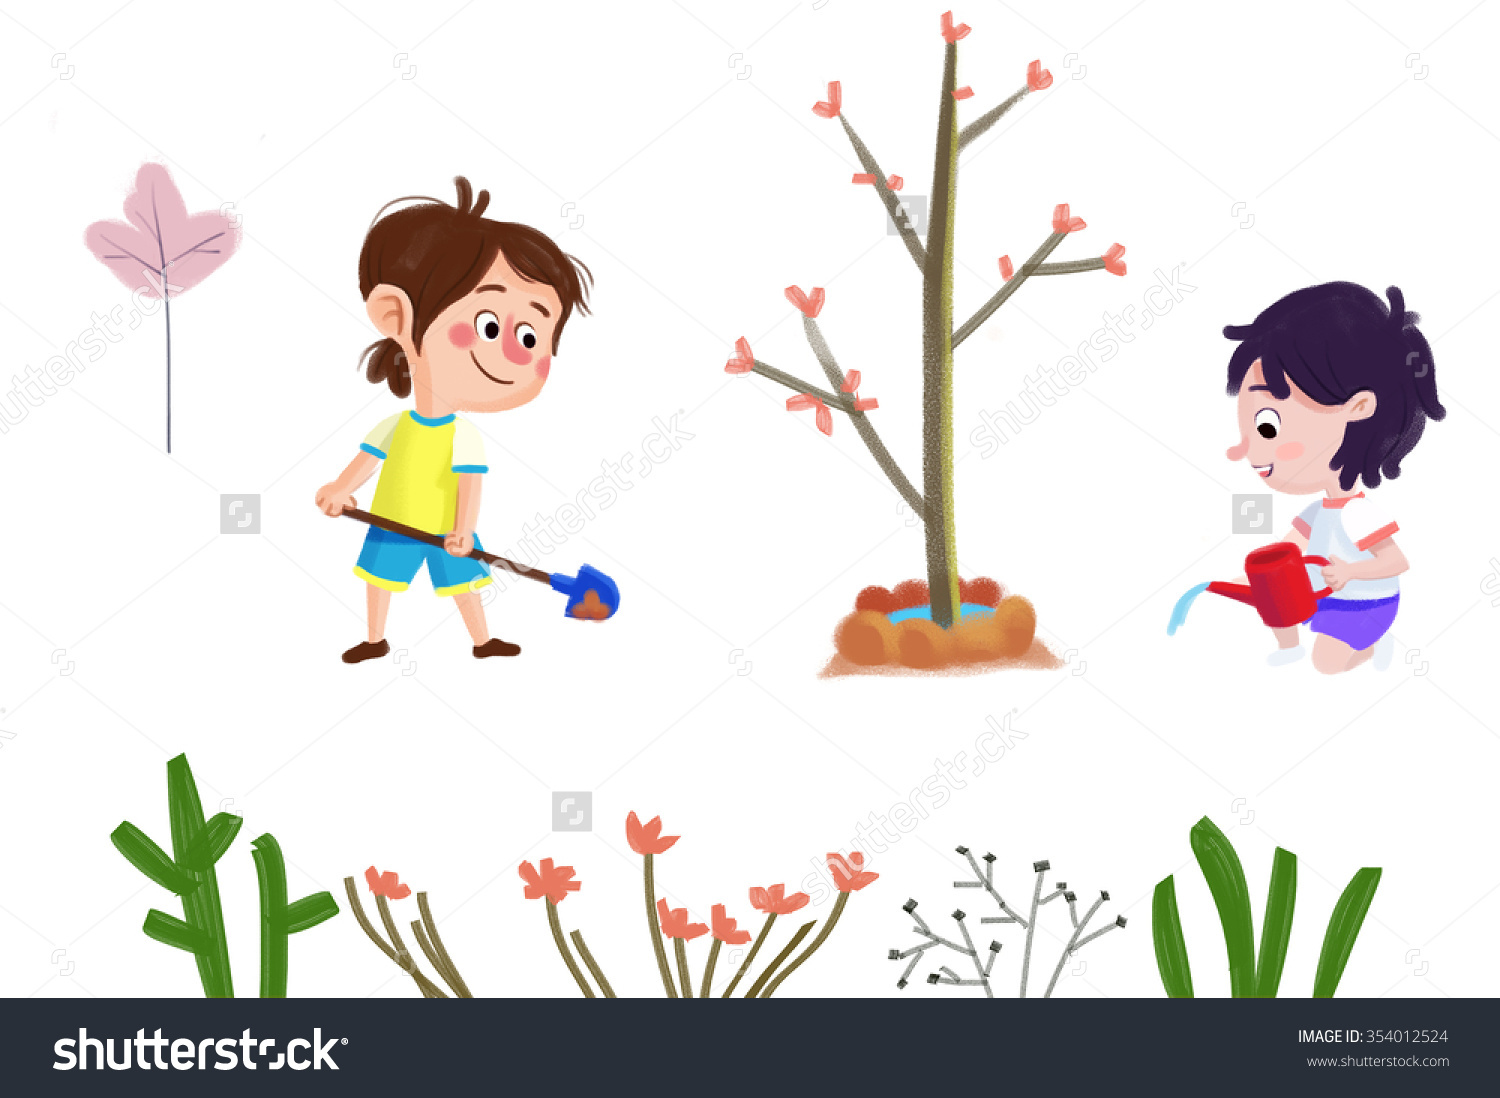 Clip Art Set Nature Objects Boy Stock Illustration 354012524.